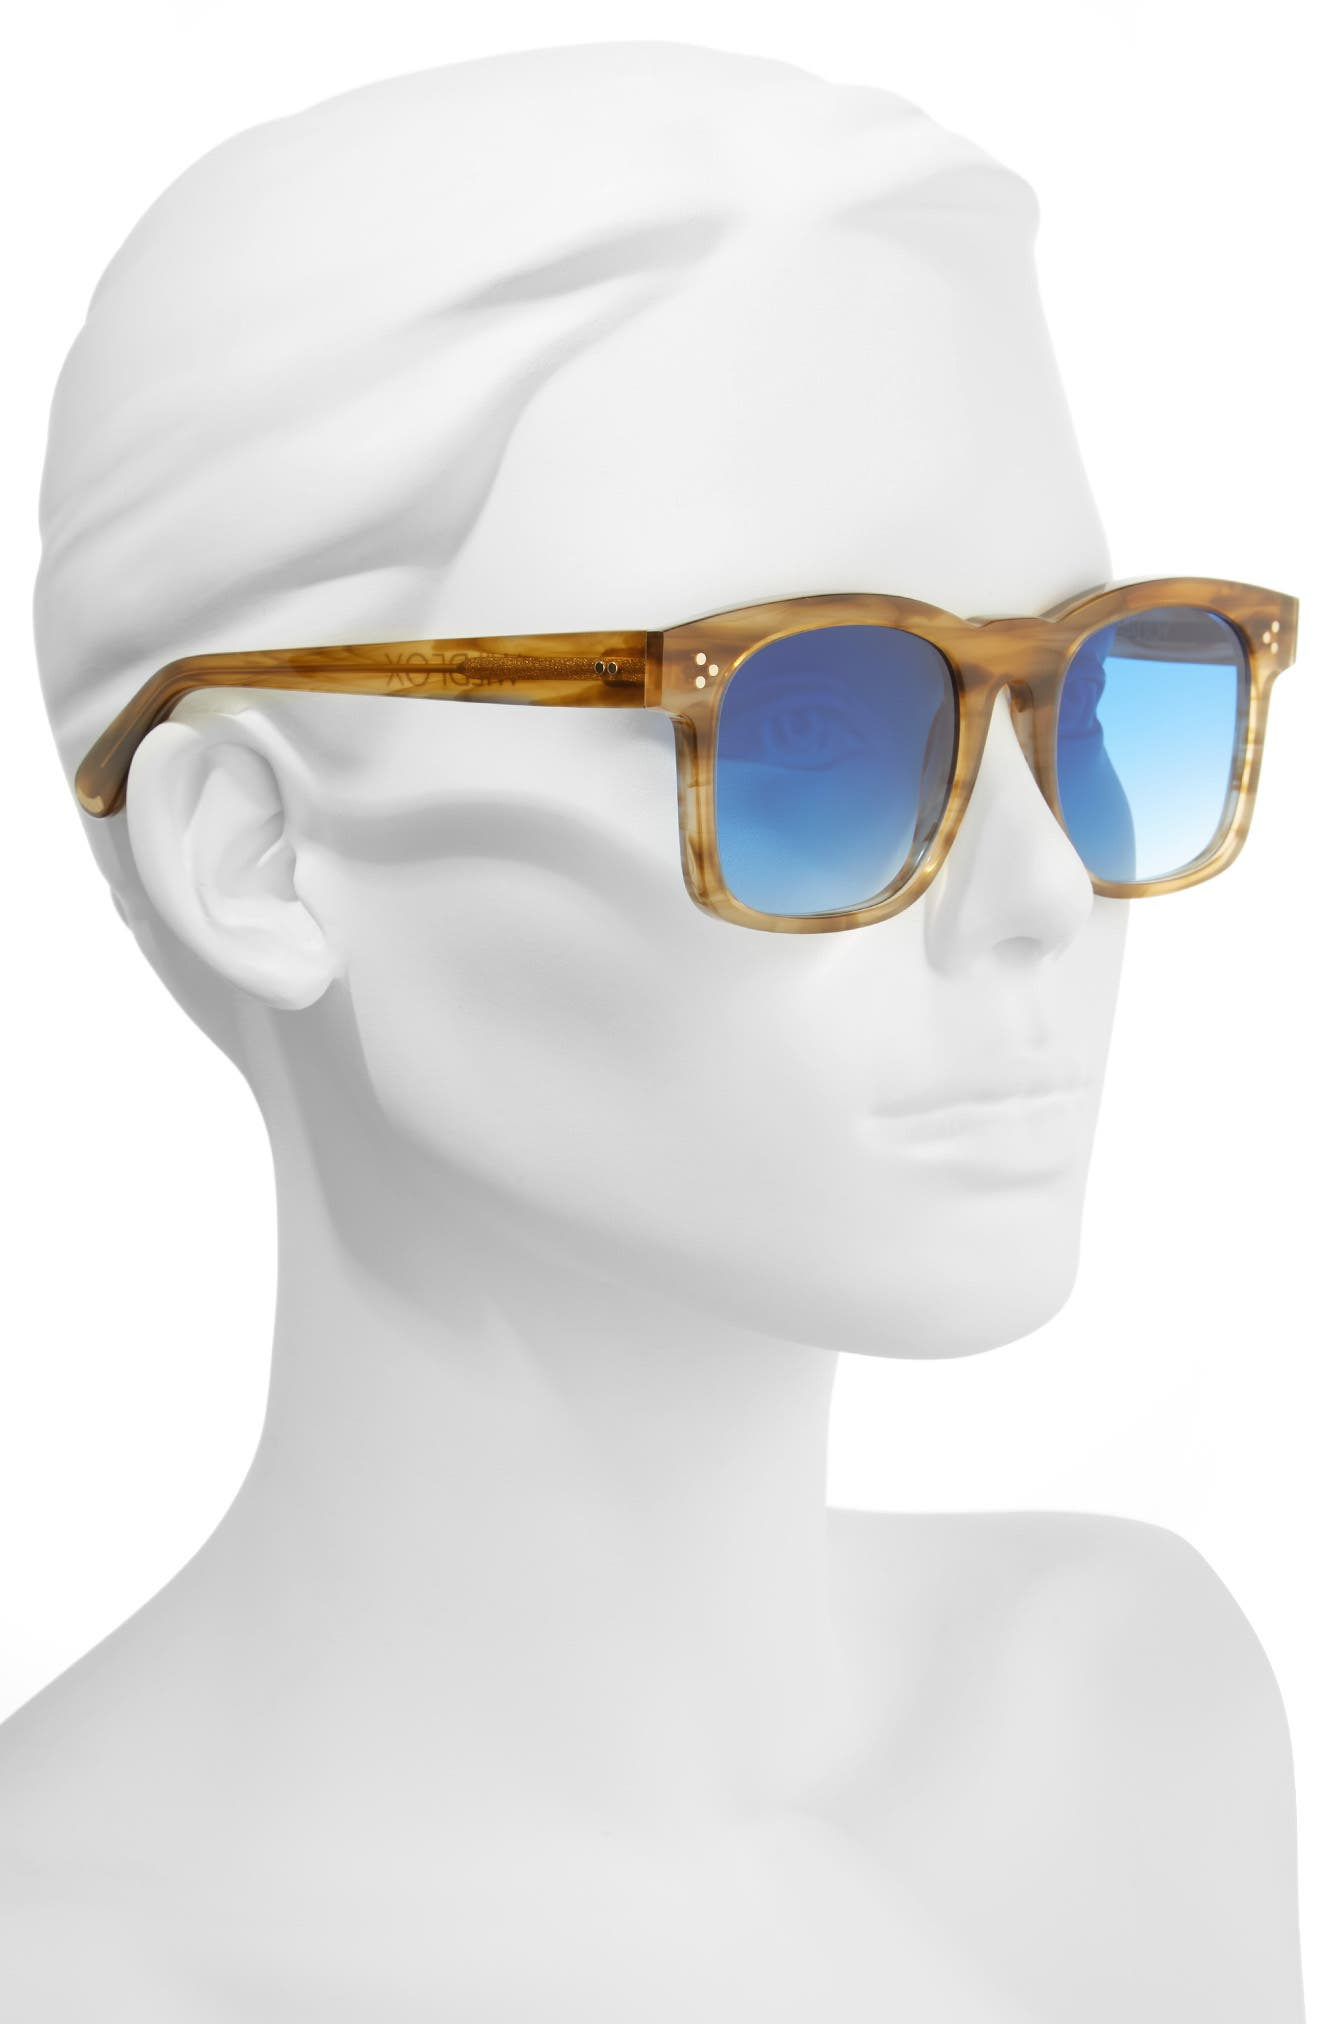 WILDFOX, Gaudy Zero 51mm Flat Square Sunglasses, Alternate thumbnail 2, color, SIERRA TORTOISE